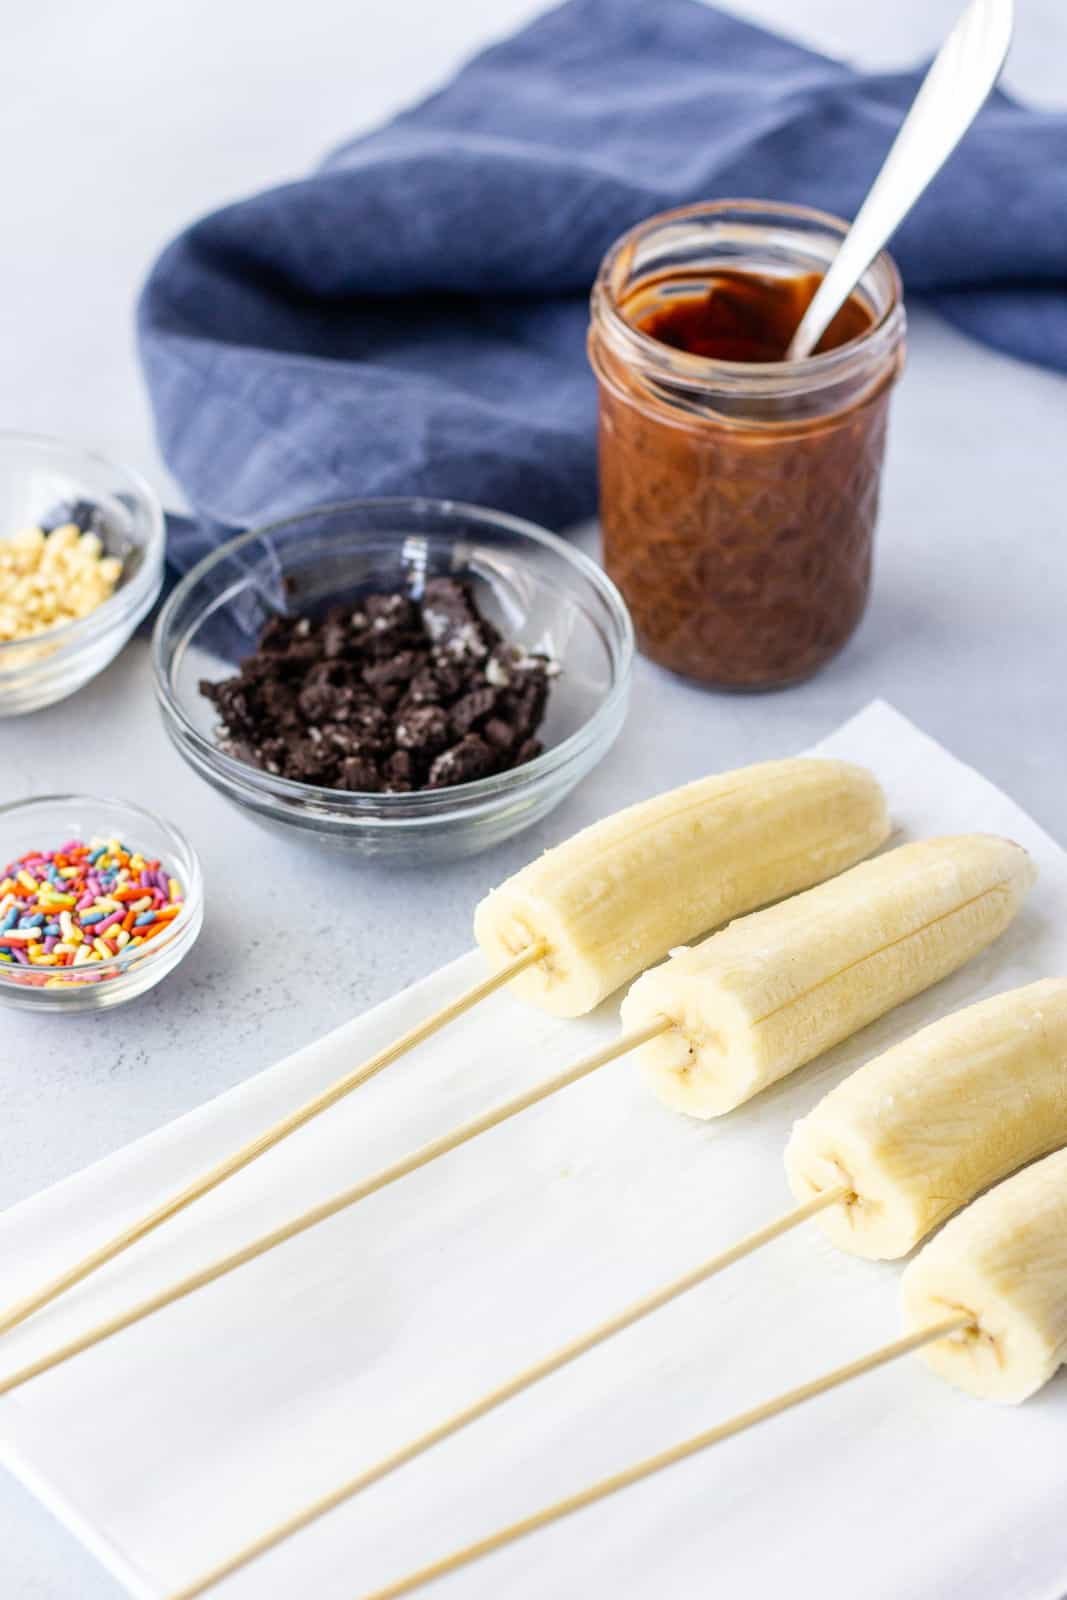 Halved bananas on skewers on a plate with a jar of melted chocolate and toppings in bowls.